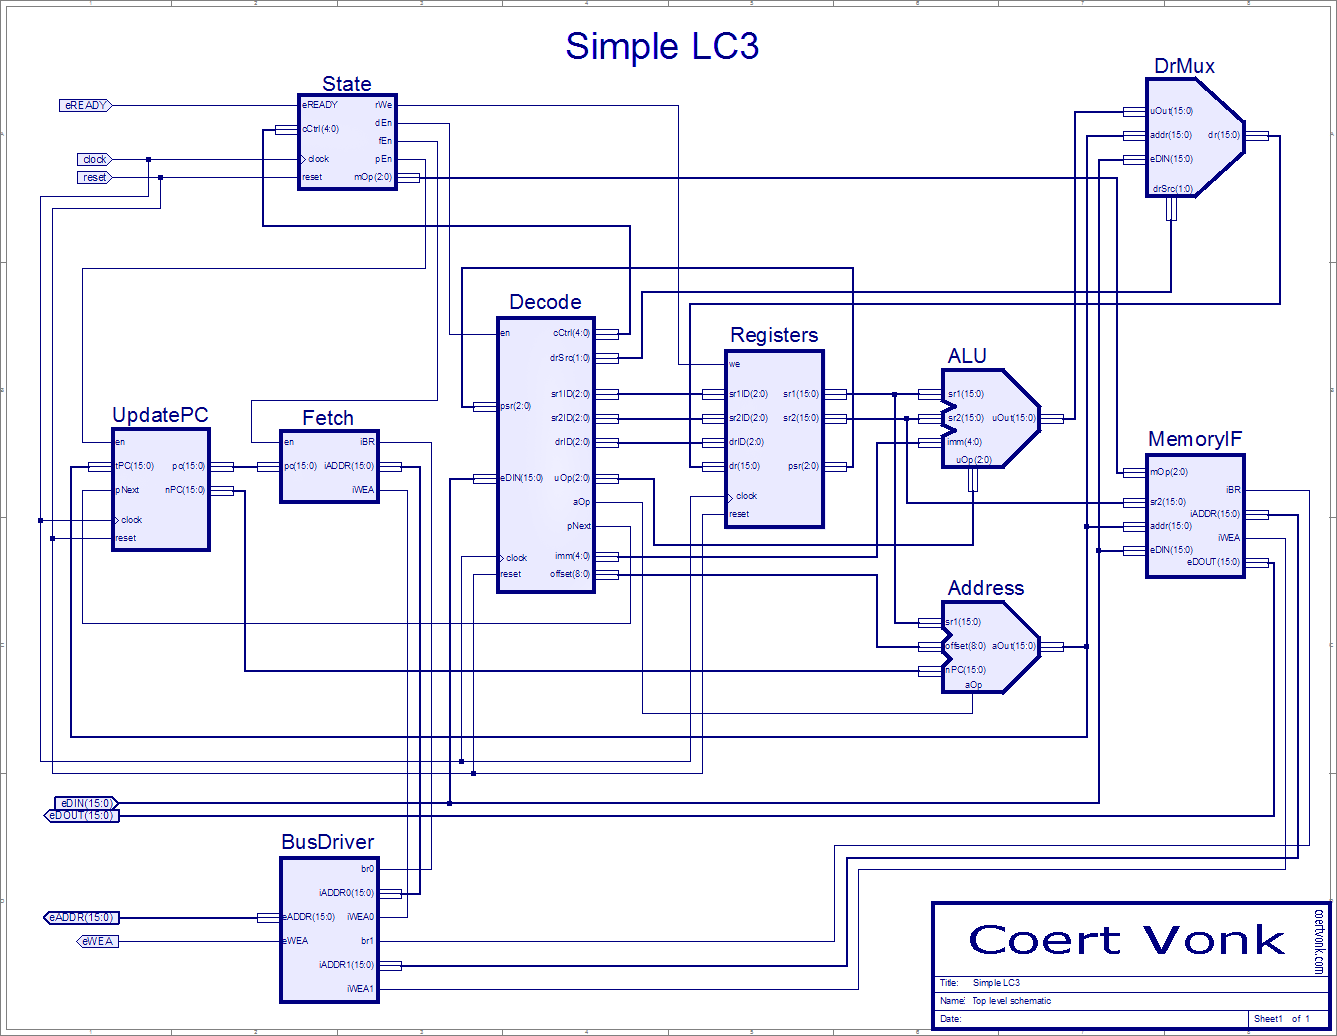 Lc3 Wiring Schematic Free Diagram For You Basic Hvac Diagrams Symbols Understand How Microprocessors Work By Building One From Simple Schematics